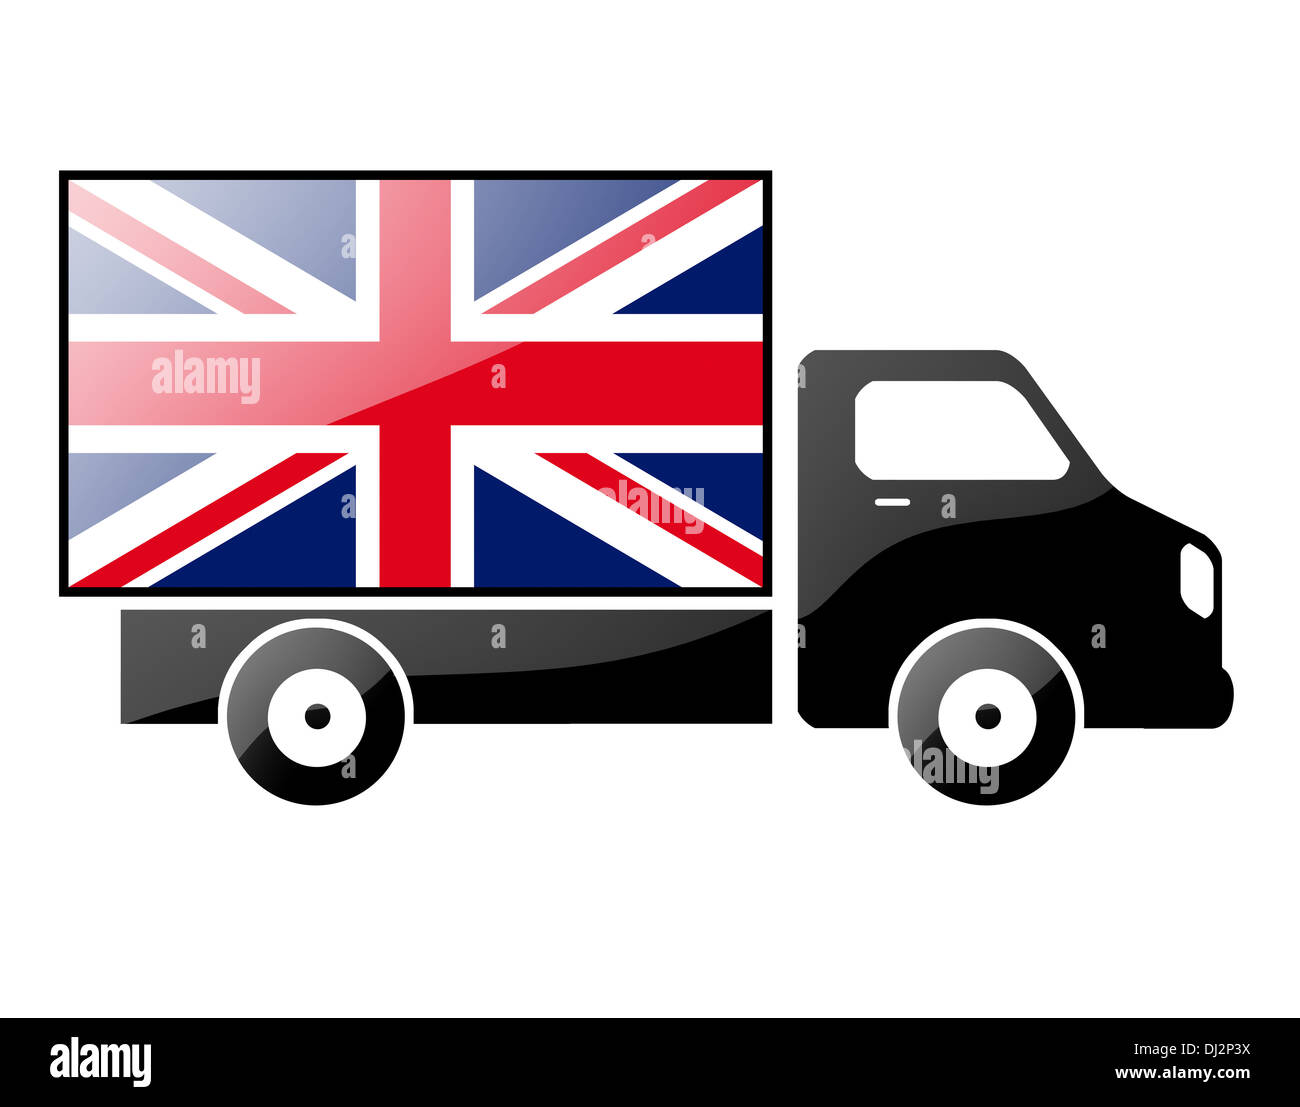 The British flag - Stock Image